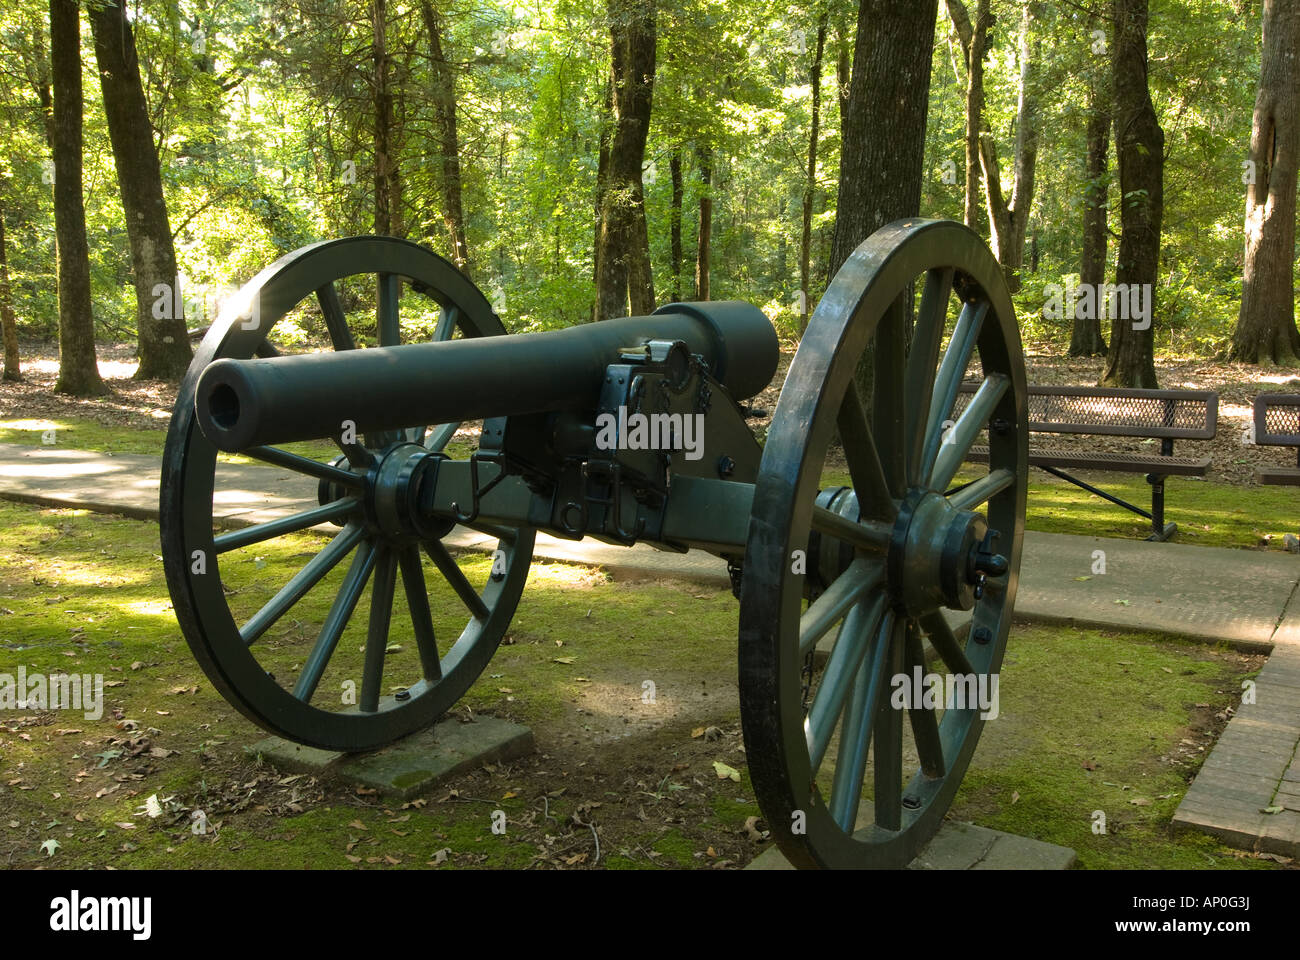 10 pound Parrott rifle at the Civil War era rifle pits at the Arkansas Post National Memorial in the Delta region - Stock Image